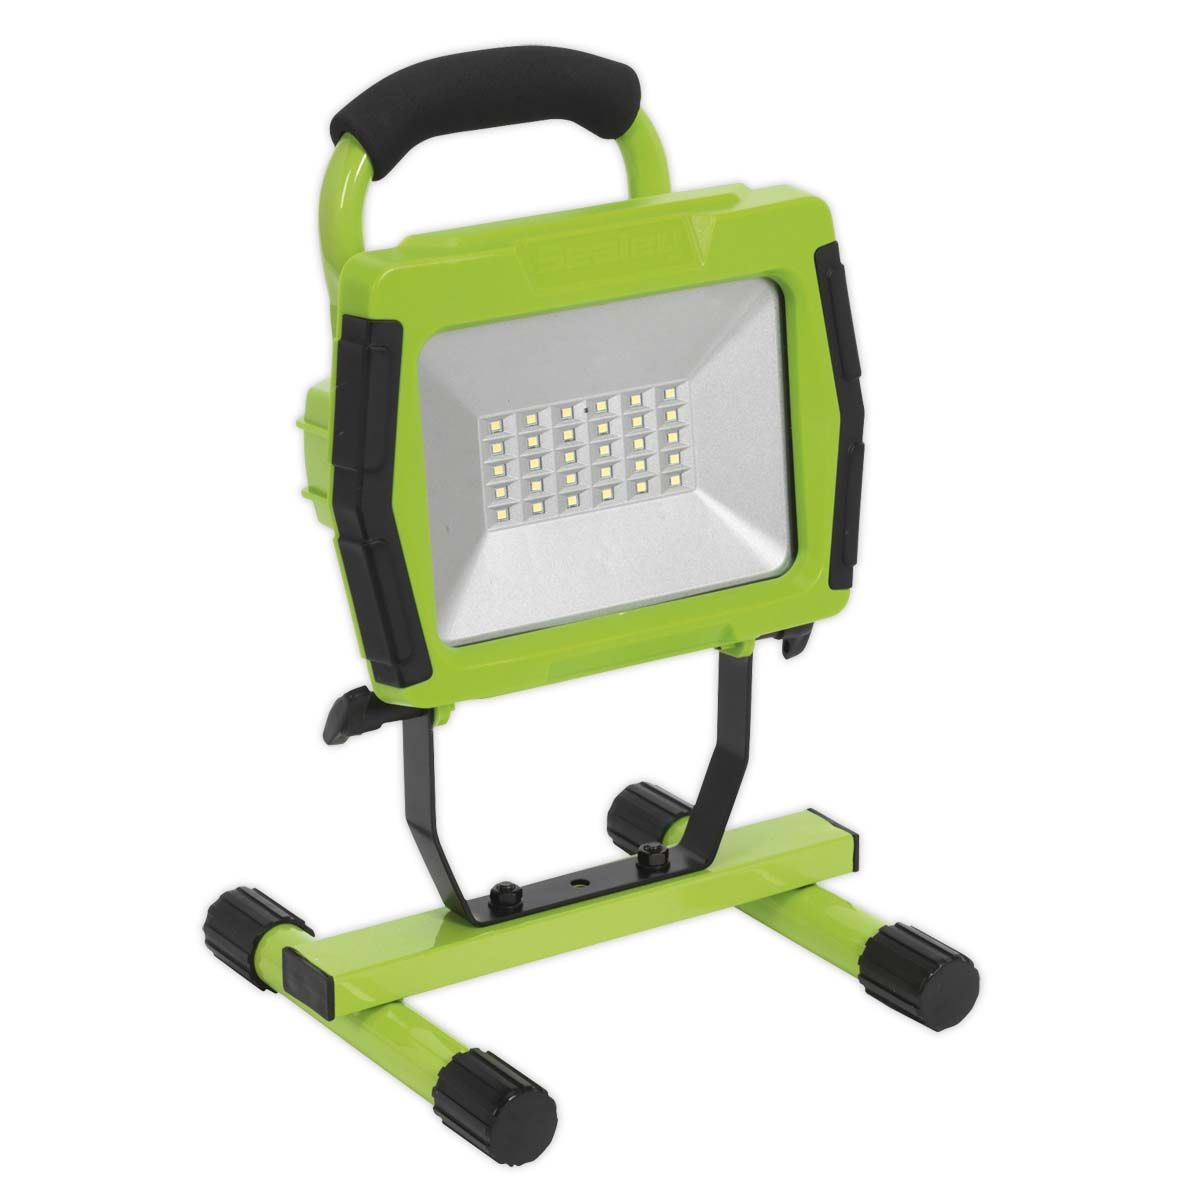 Sealey Rechargeable Portable Floodlight 30SMD LED Lithium-ion